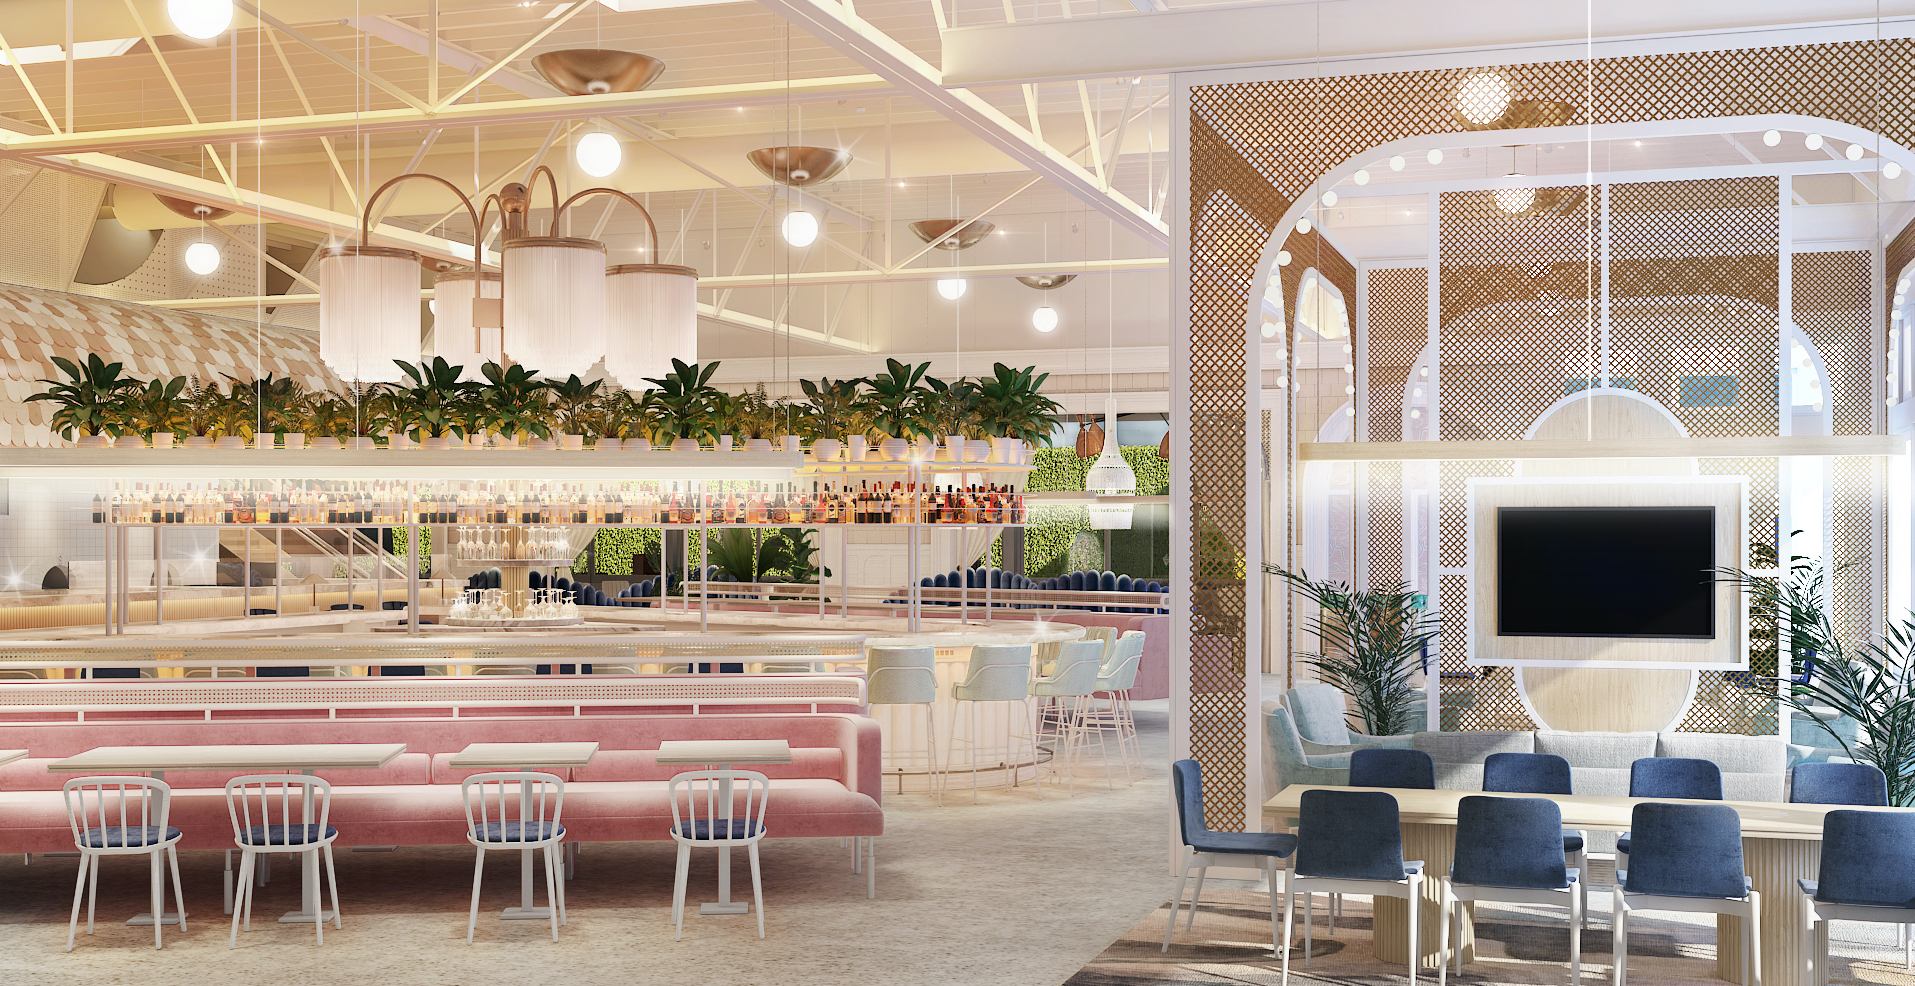 A rendering of the dining room at Sauce shows plants floating above a blush pink banquette and a long table with blue seats in front of a television.